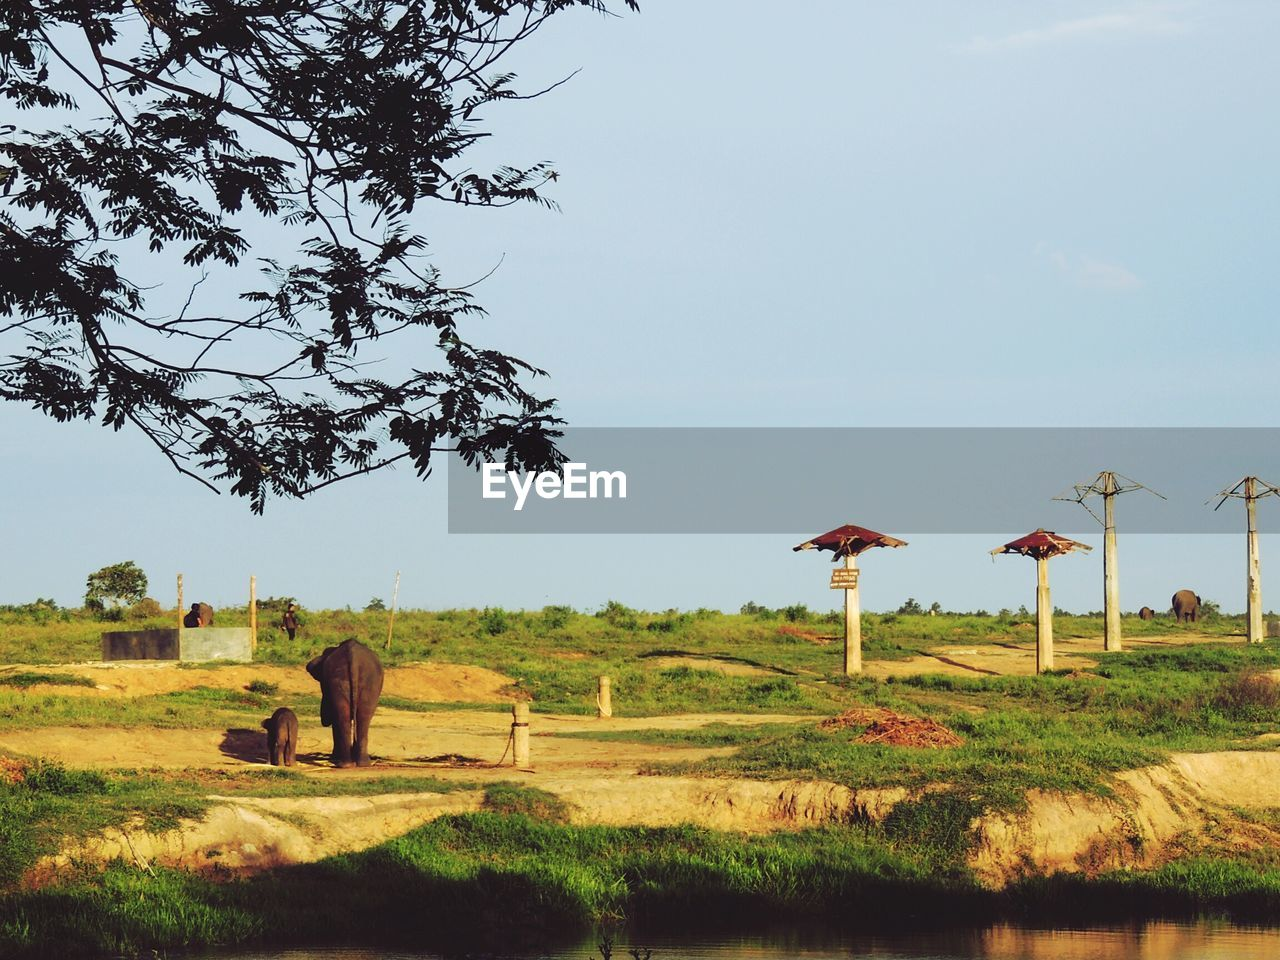 plant, tree, field, sky, environment, land, nature, landscape, grass, day, growth, animal themes, beauty in nature, tranquility, tranquil scene, agriculture, outdoors, animal, mammal, scenics - nature, no people